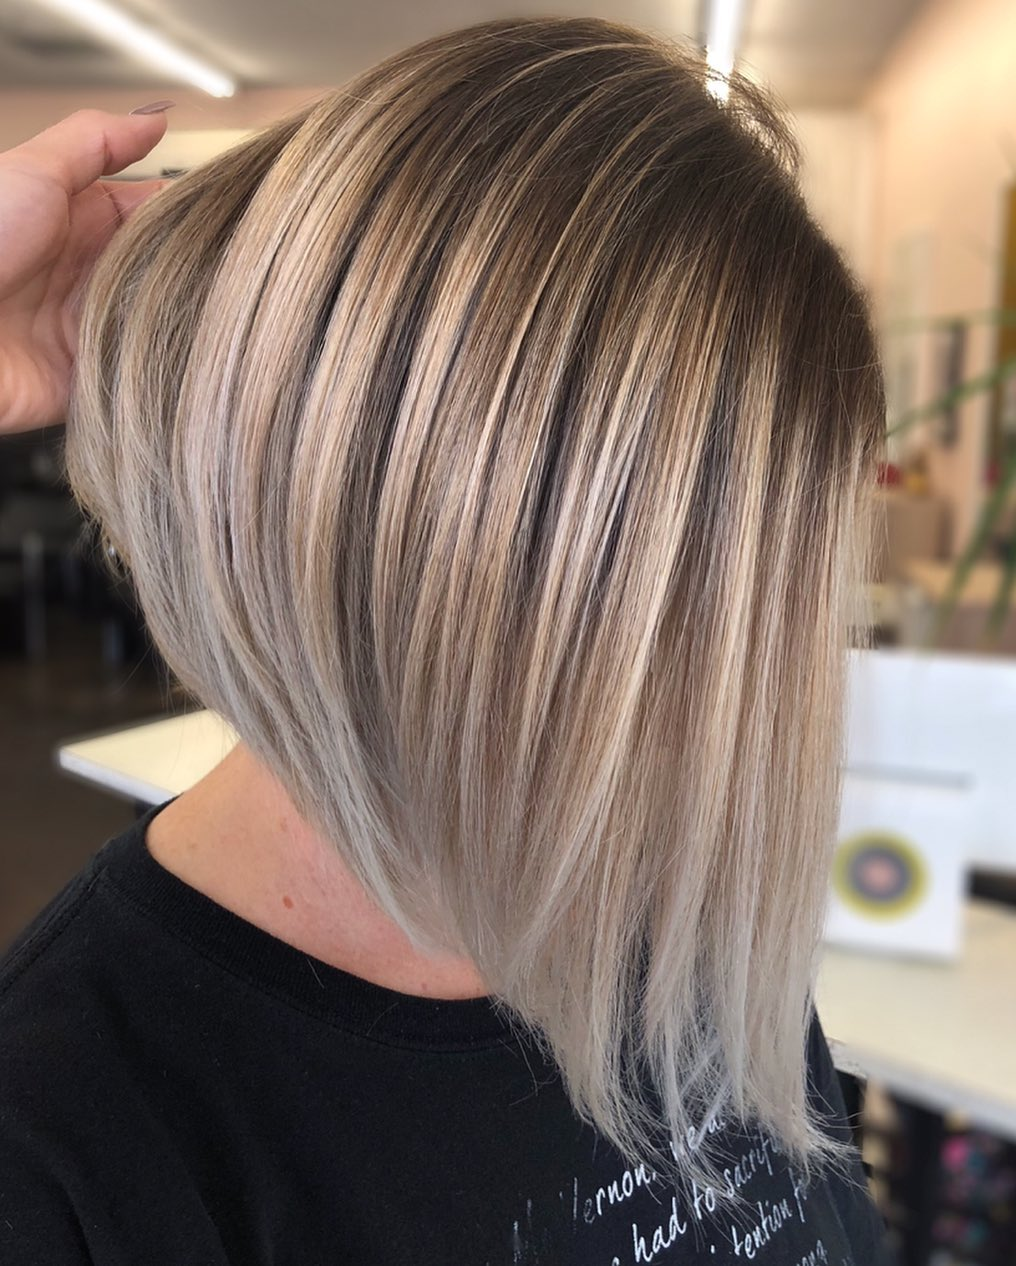 Blonde Inverted Bob for Medium-Length Hair